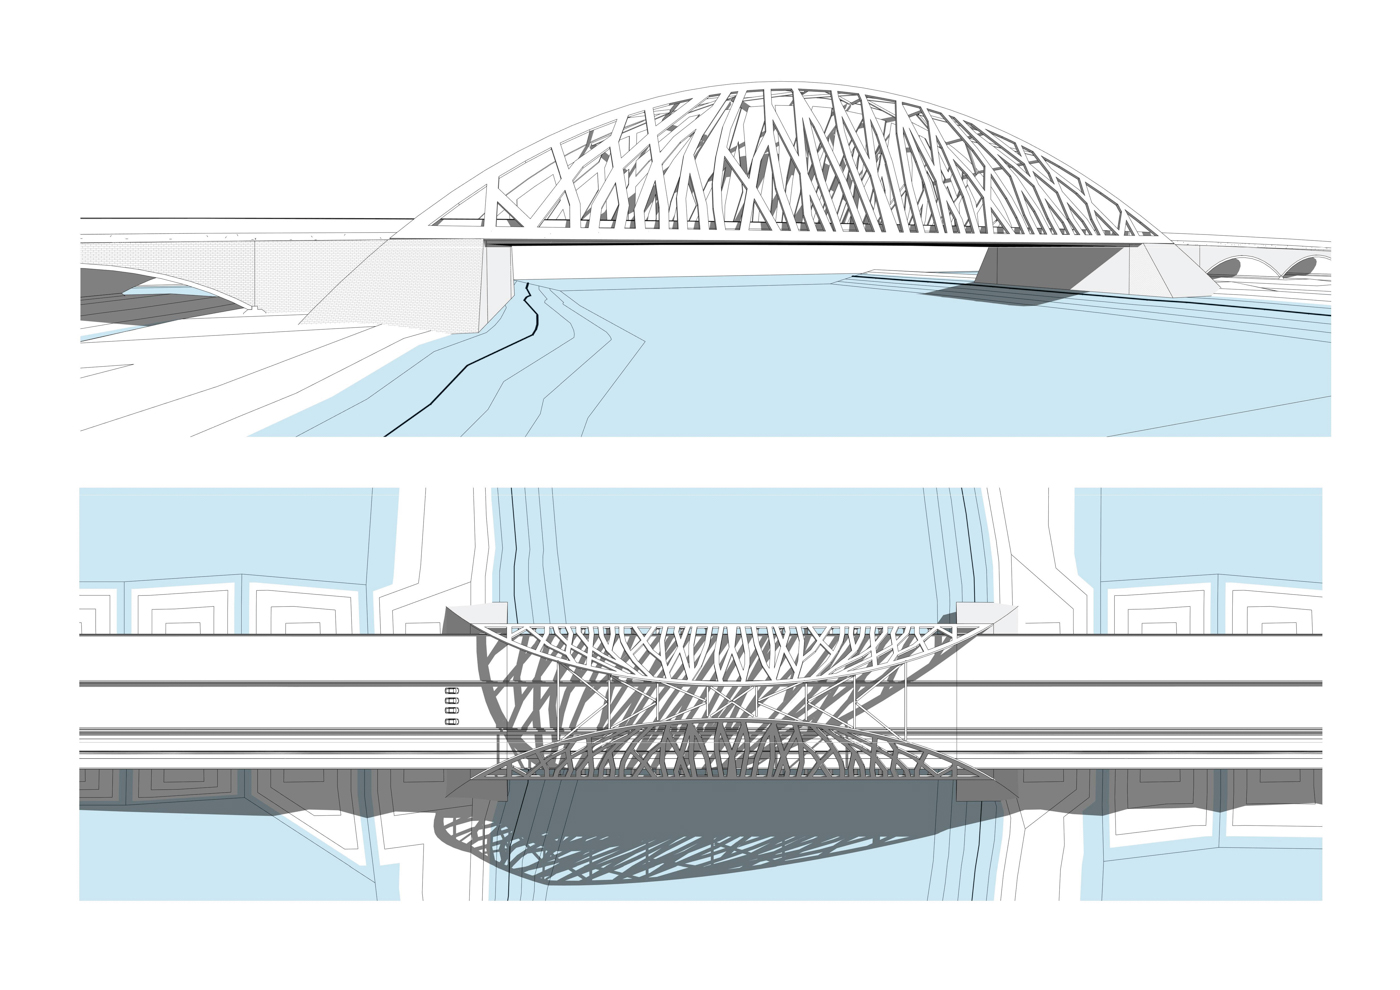 Concept 4: A girder bridge supported by two columns founded at the bottom of the canal.